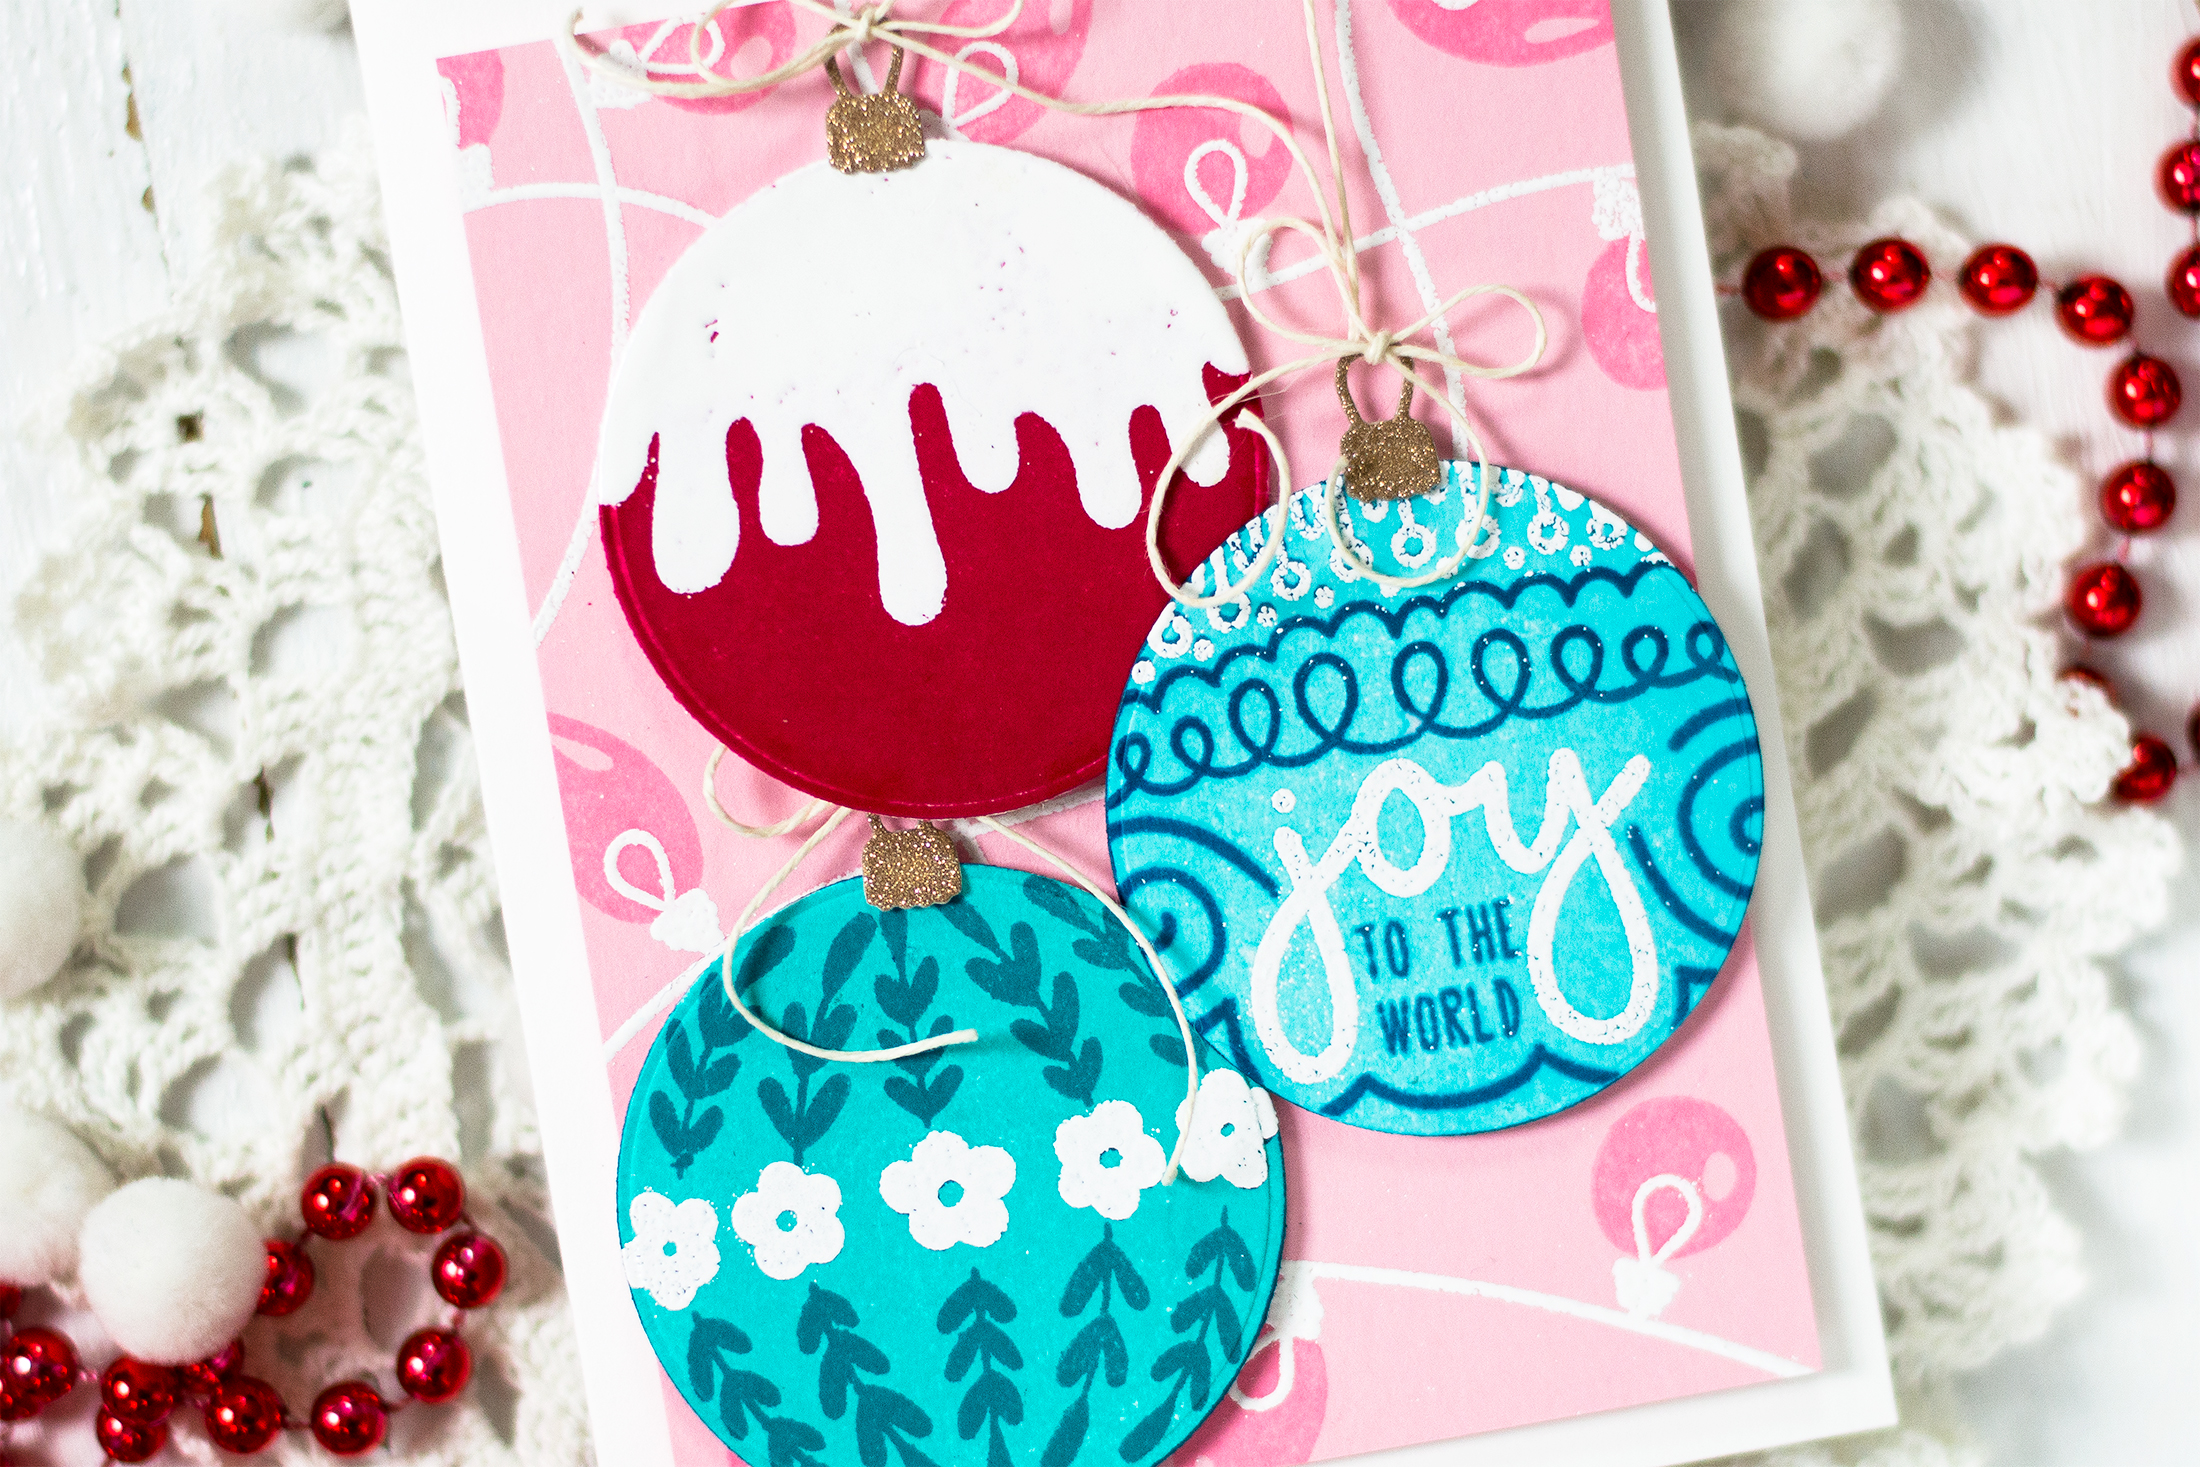 Pink Background Ornaments Christmas Card. Card by Svitlana Shayevich